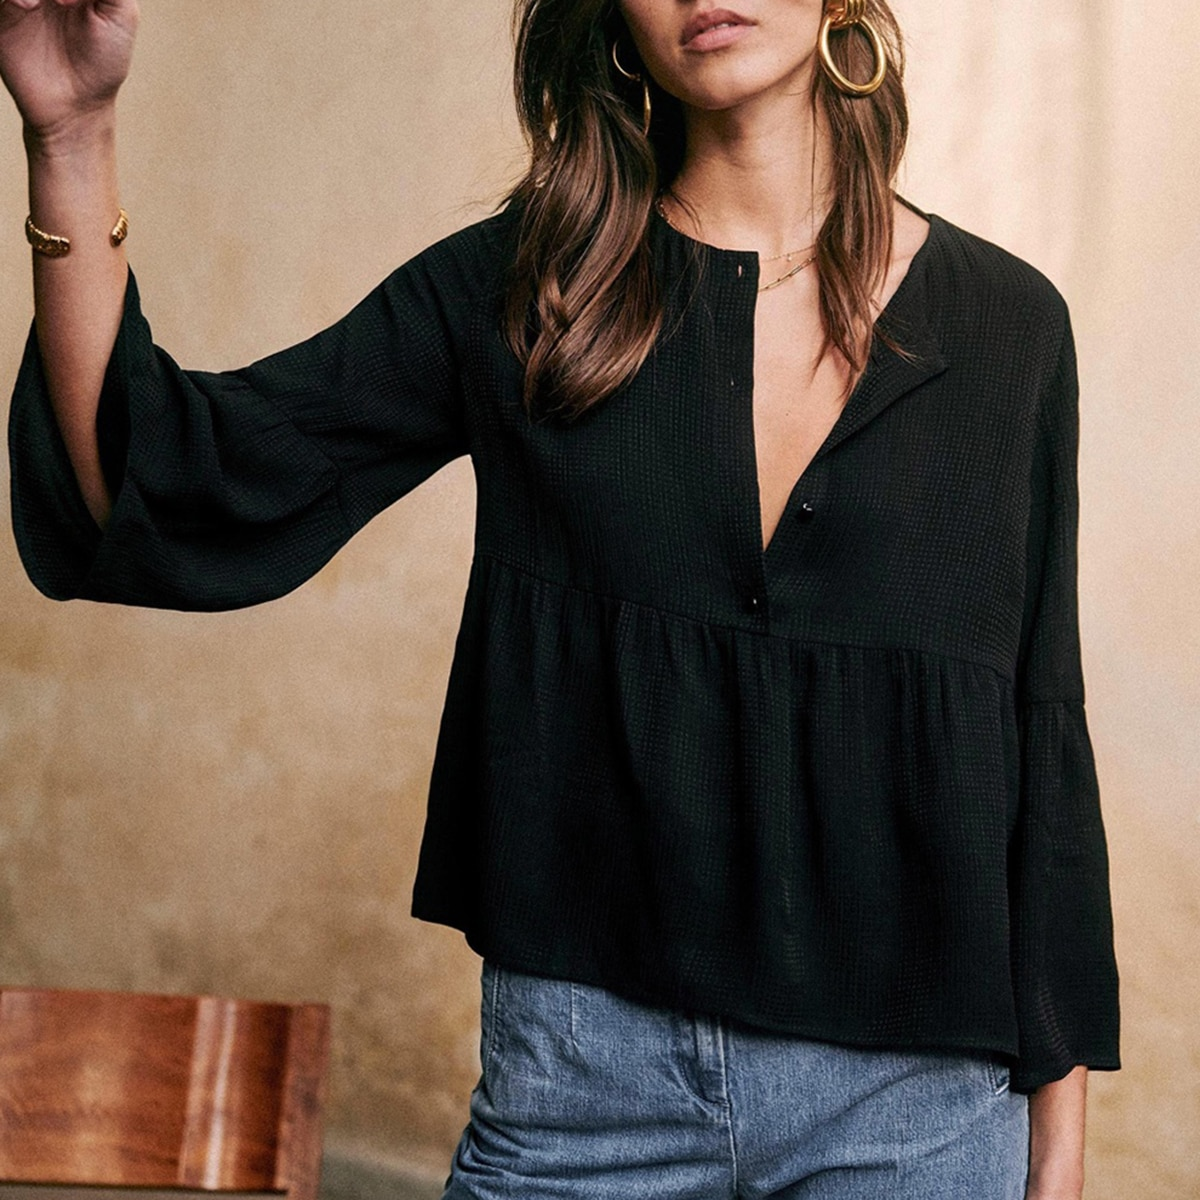 Maiwenn Black Blouse Women Spring Autumn Flare Sleeve V Neck Buttons Up Chic Casual Shirts Vintage Loose Tunic 2021 Tops Retro